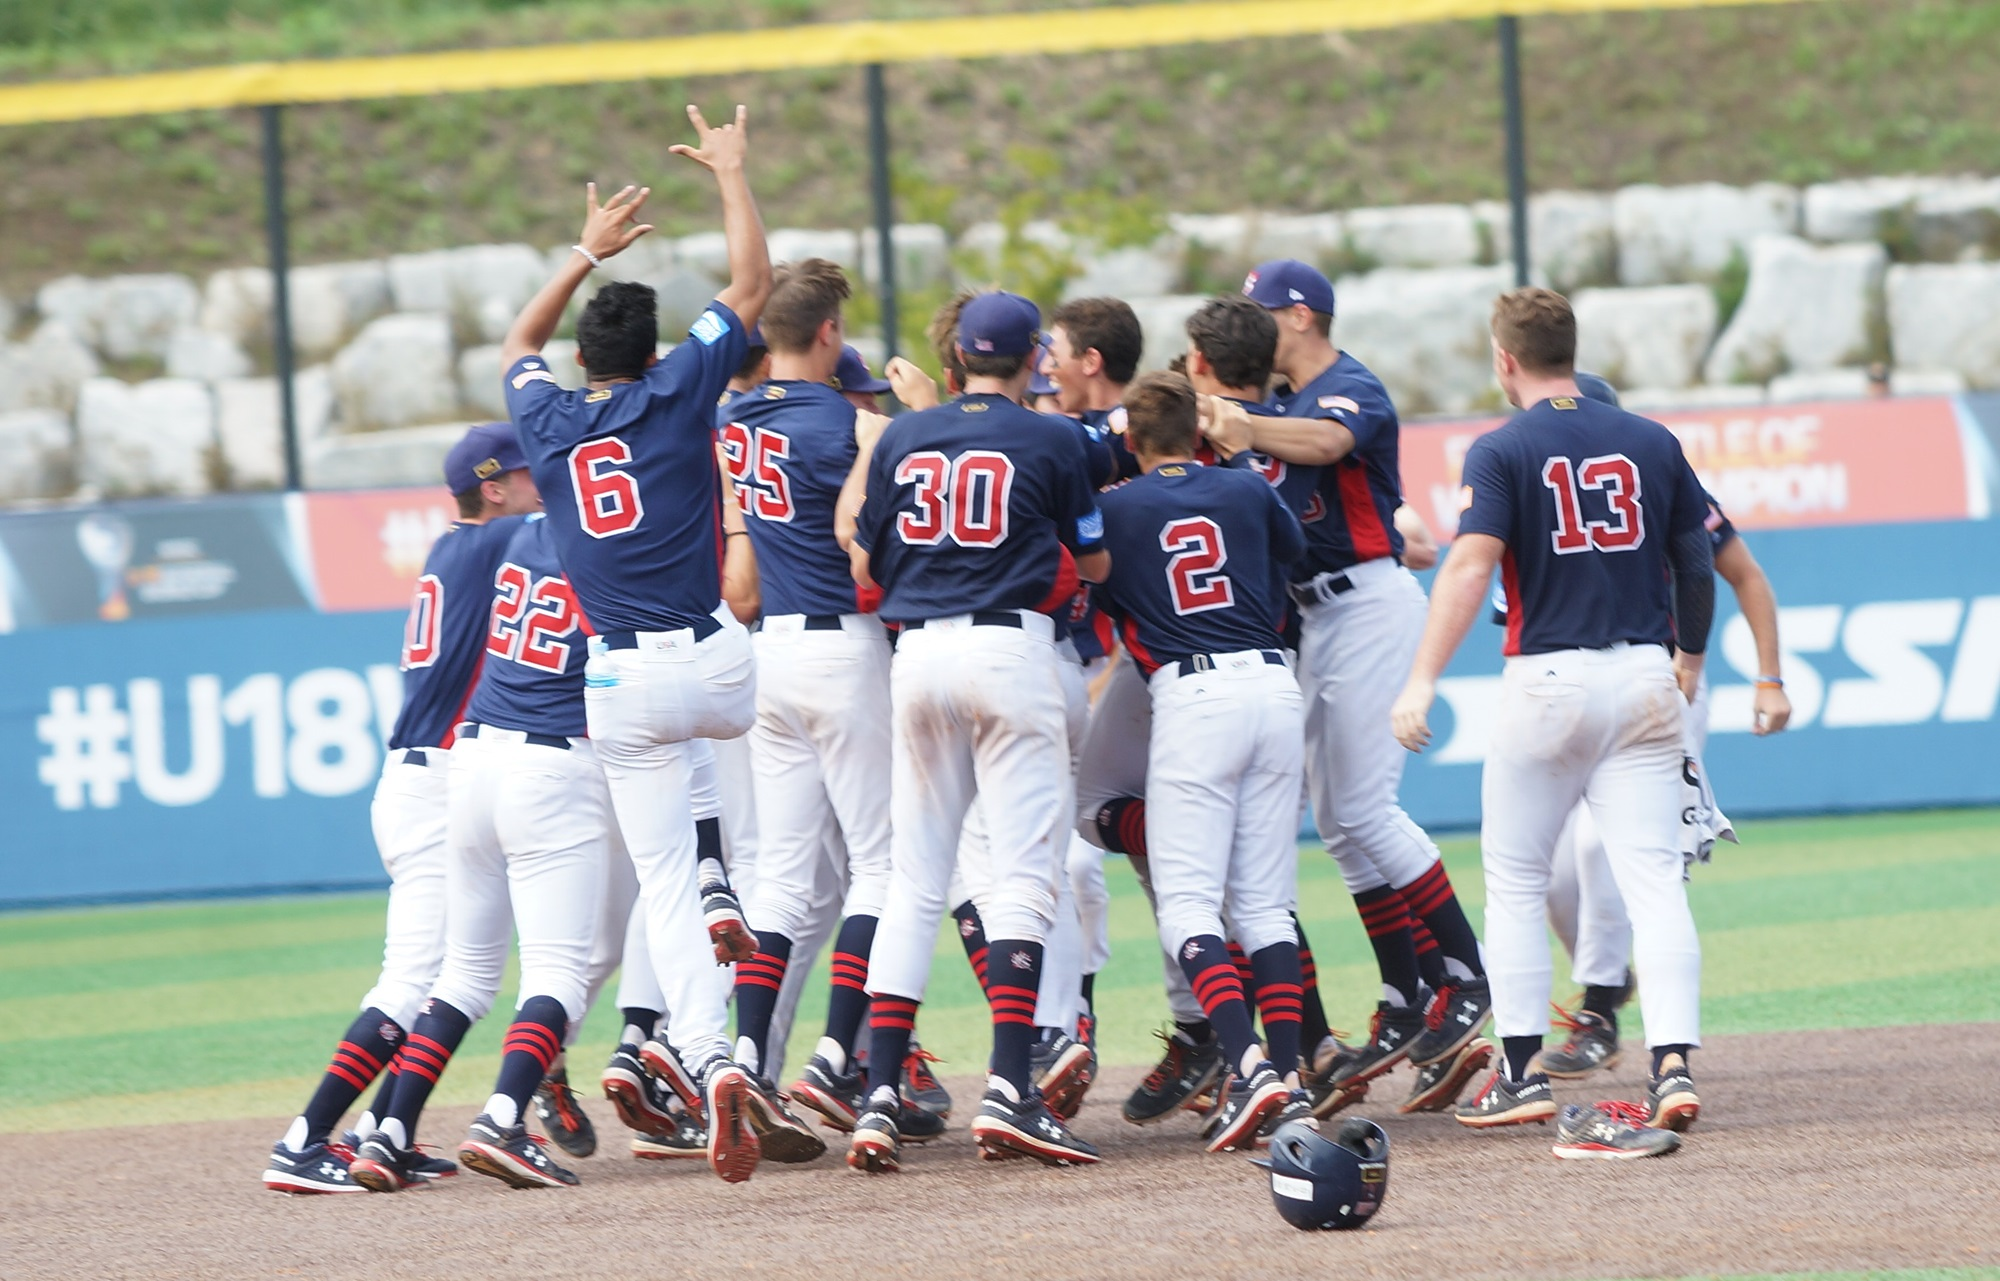 The USA players celebrate Romo after his walk-off single